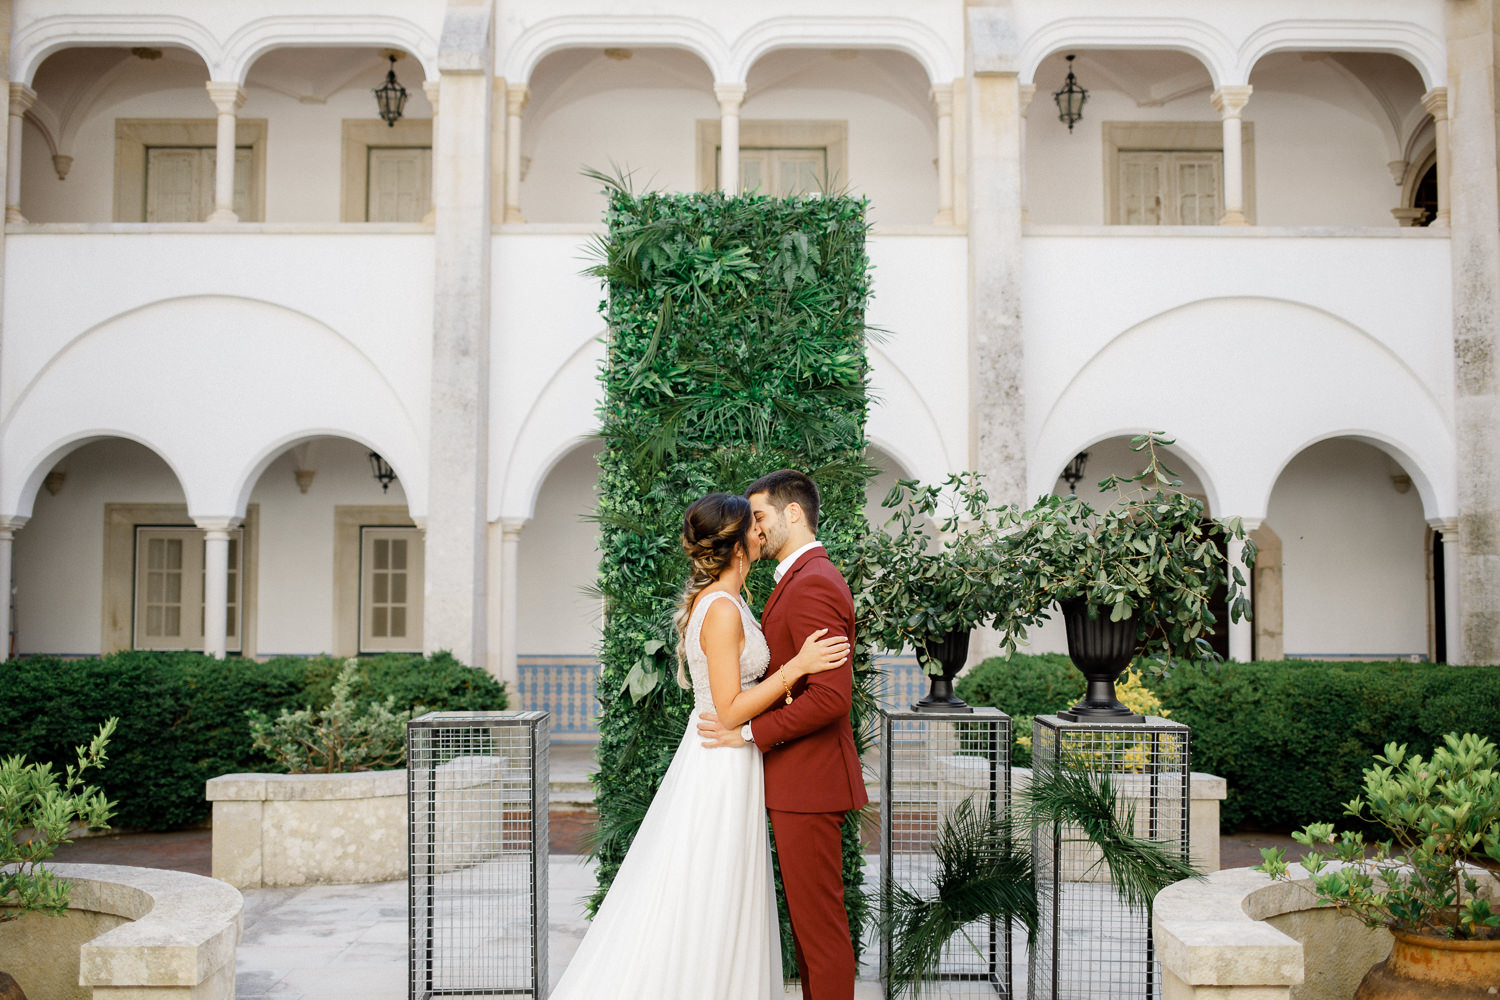 Intimate Wedding in Portugal